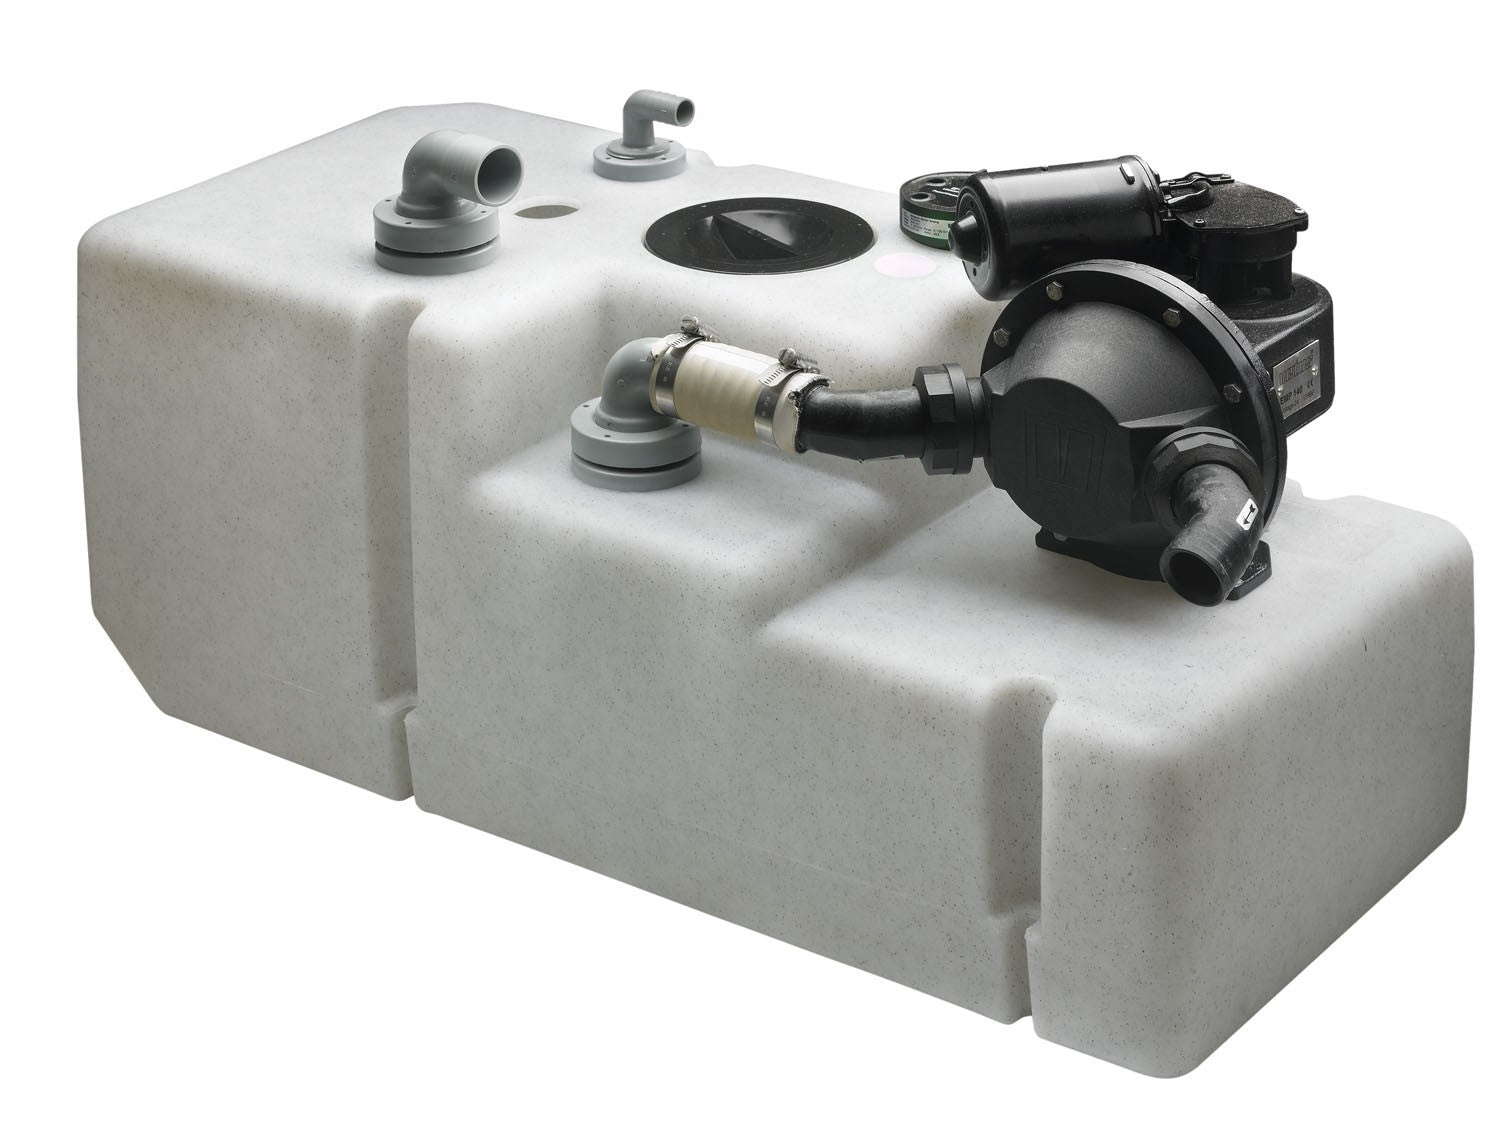 Vetus waste water tank system 42 ltrs, incl 12 volt pump, float and suction pipe (excl angled fittings)